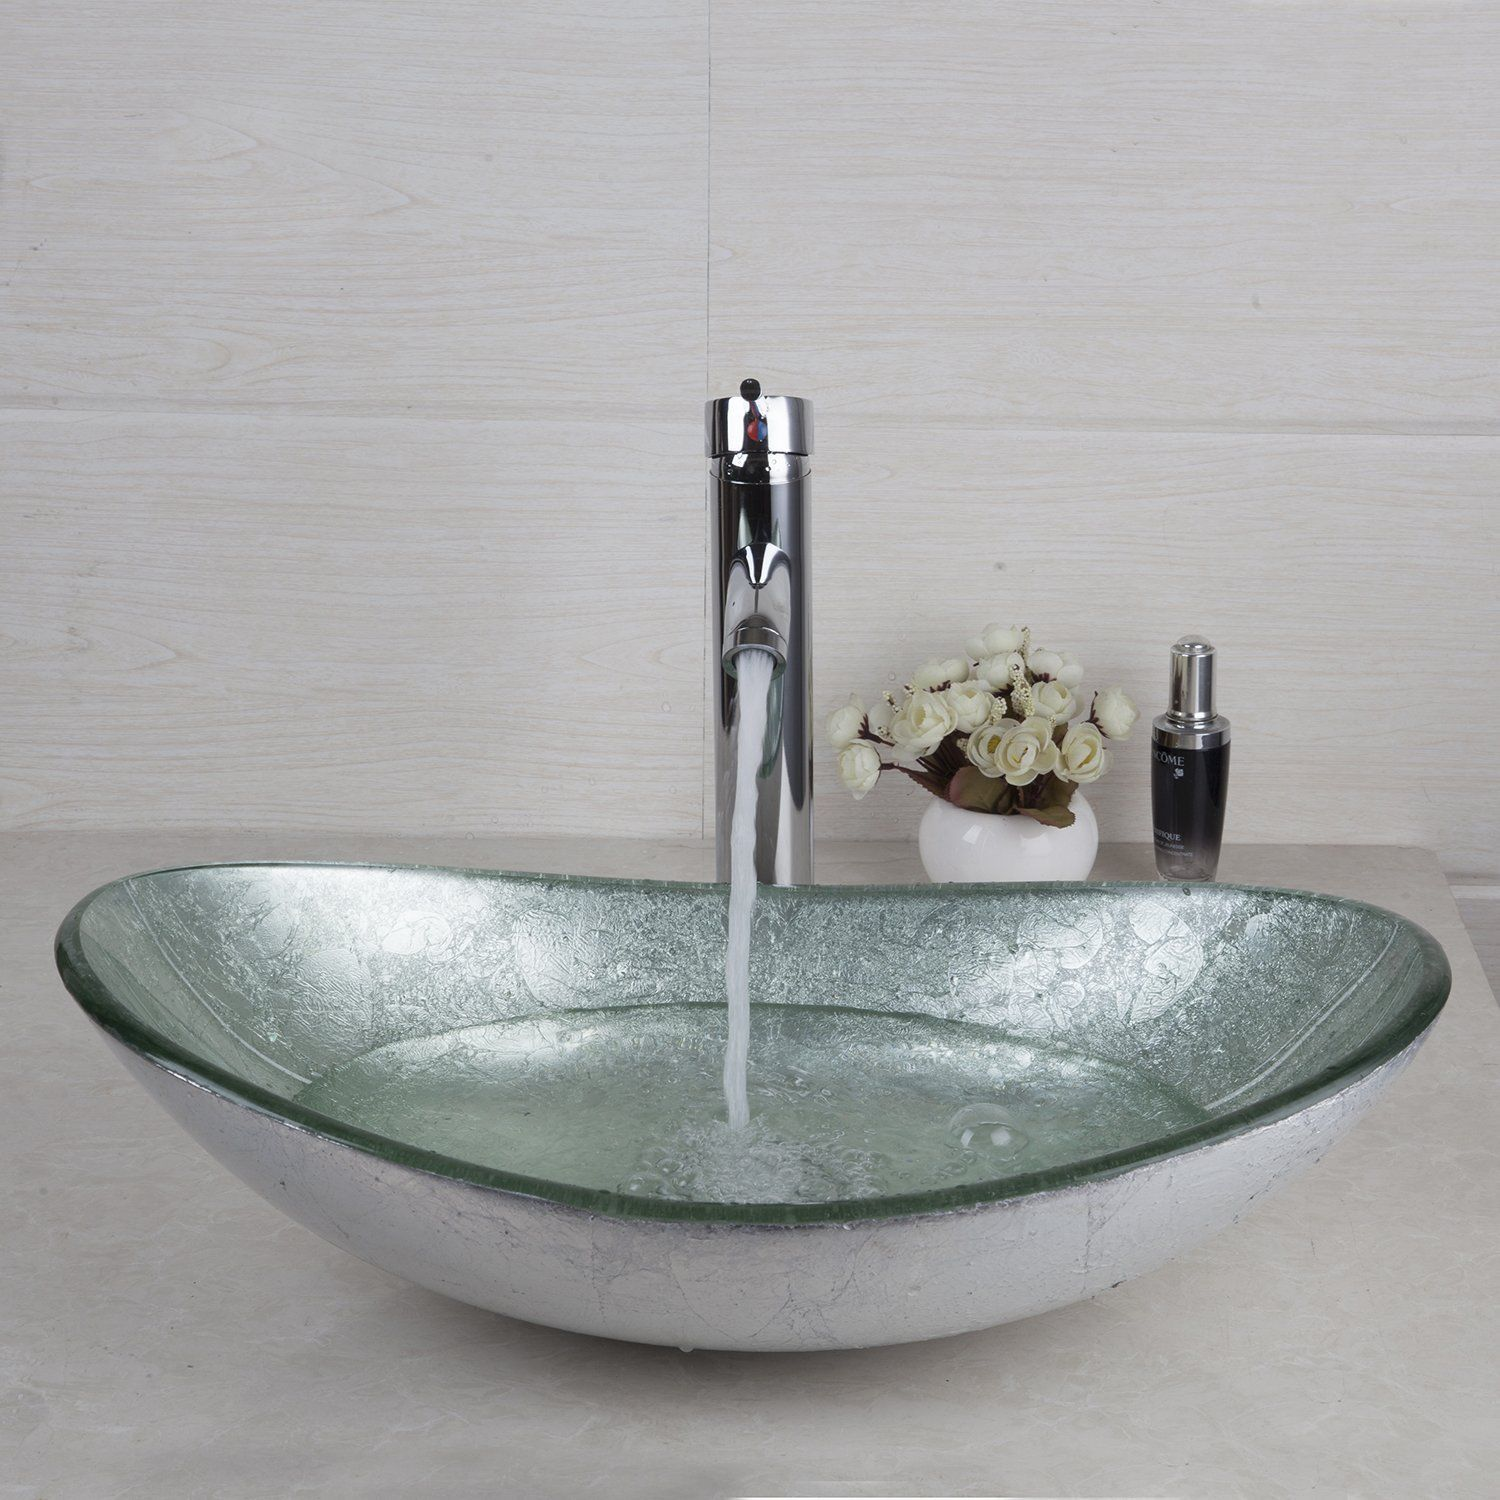 Silver Tempered Glass Bathroom Vessel Sink Bowl With Chrome Mixer